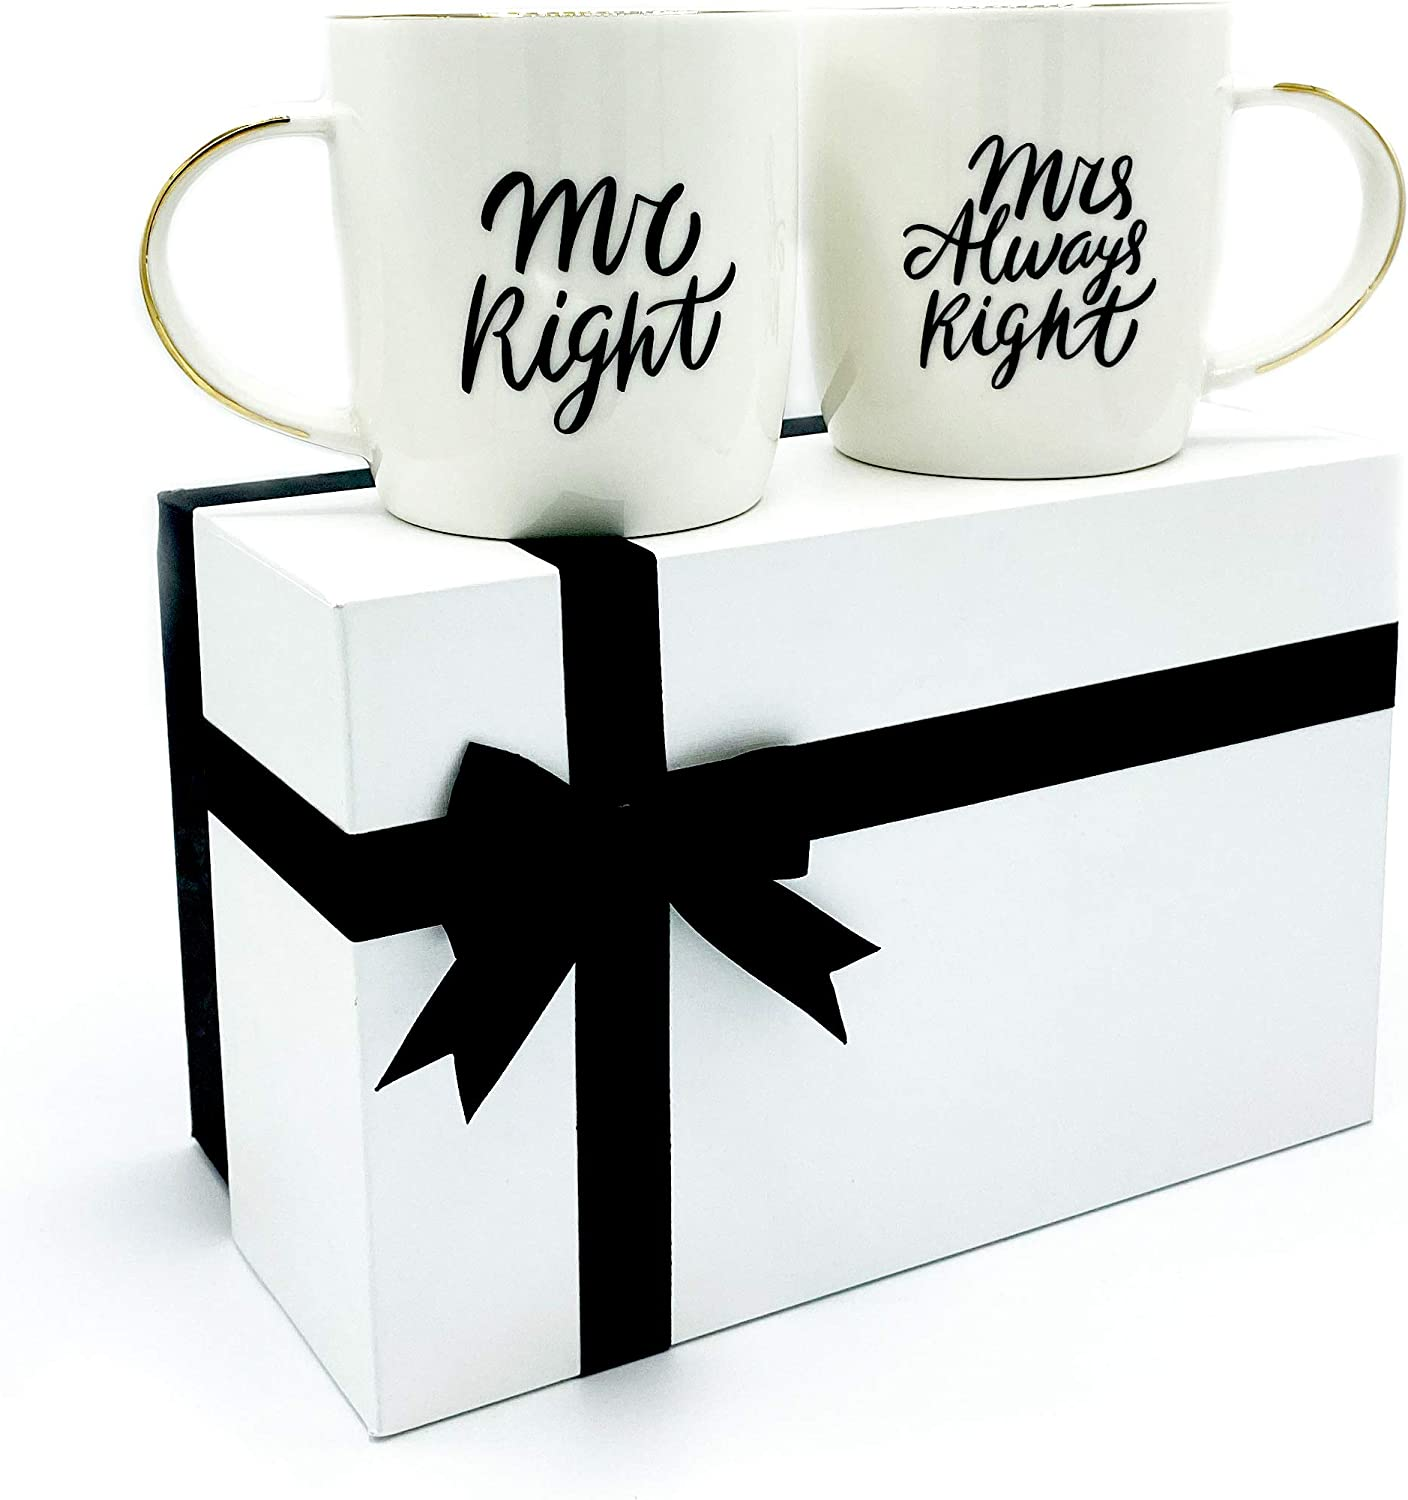 Triple Gifffted Mr Right and Mrs Always Right, Funny Coffee Mugs Gifts for Couple, Engagement Anniversary Wedding, Couples Gift, Bride Groom, Parents, Christmas Day, Newlywed, His and Hers Cups Set